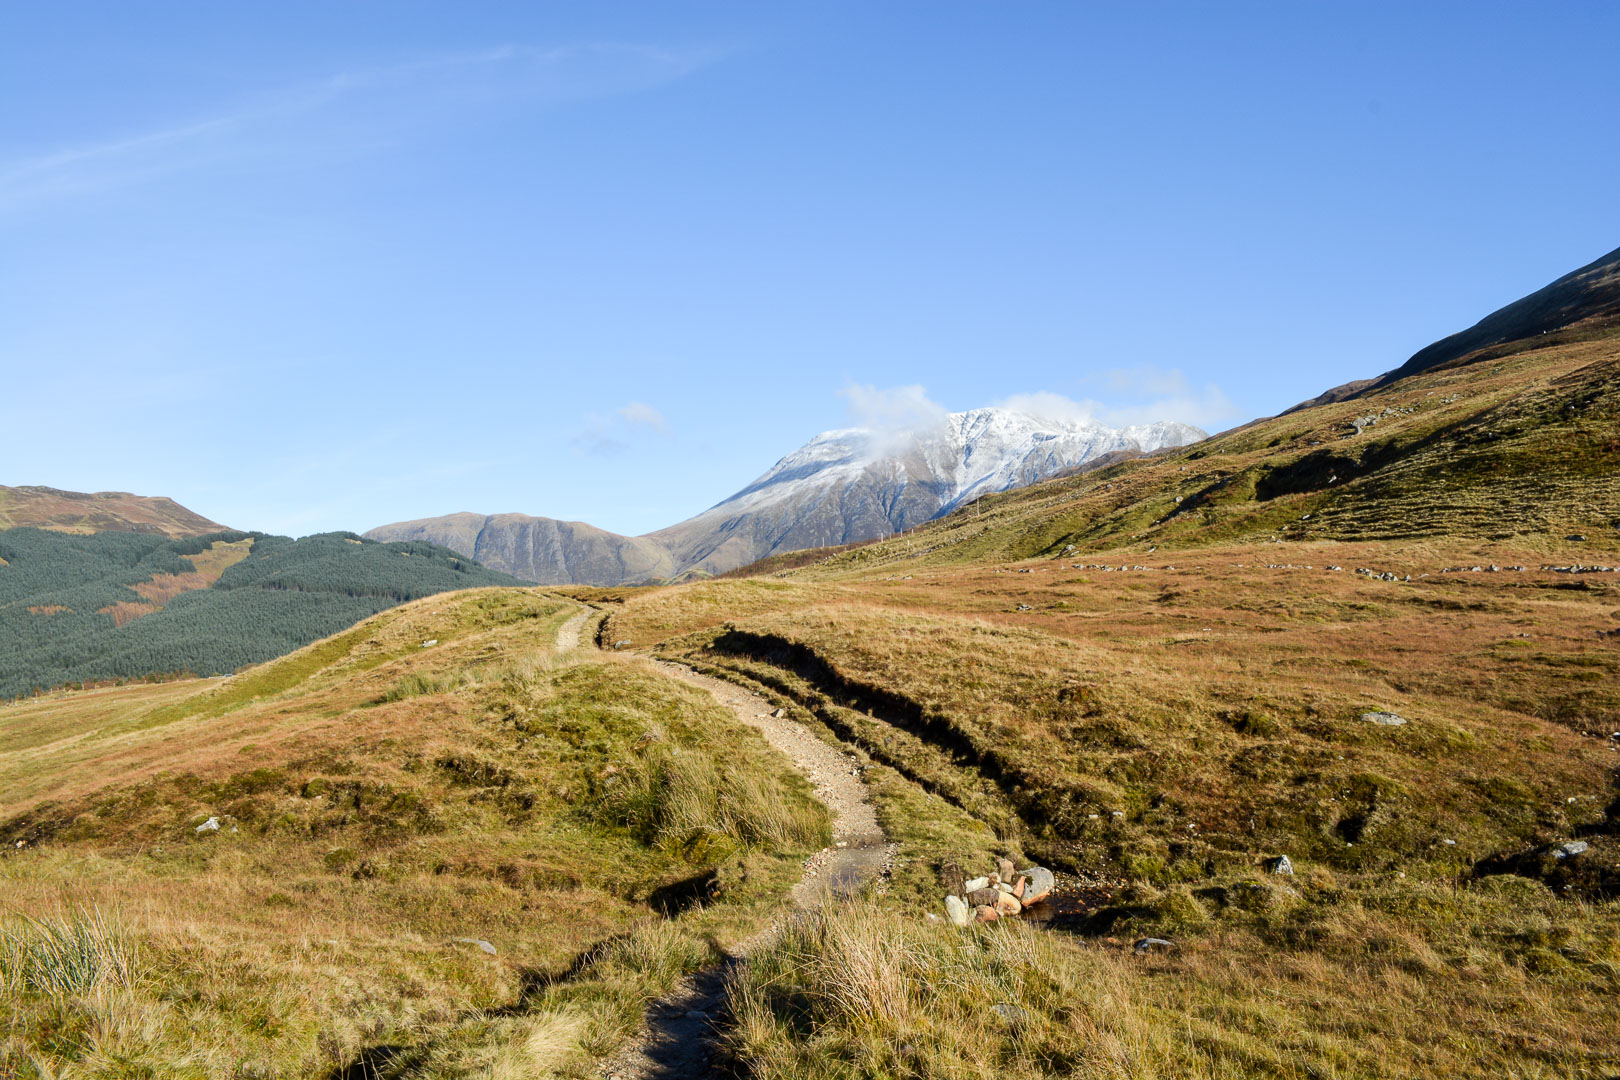 The white capped Ben Nevis tallest mountain in the UK